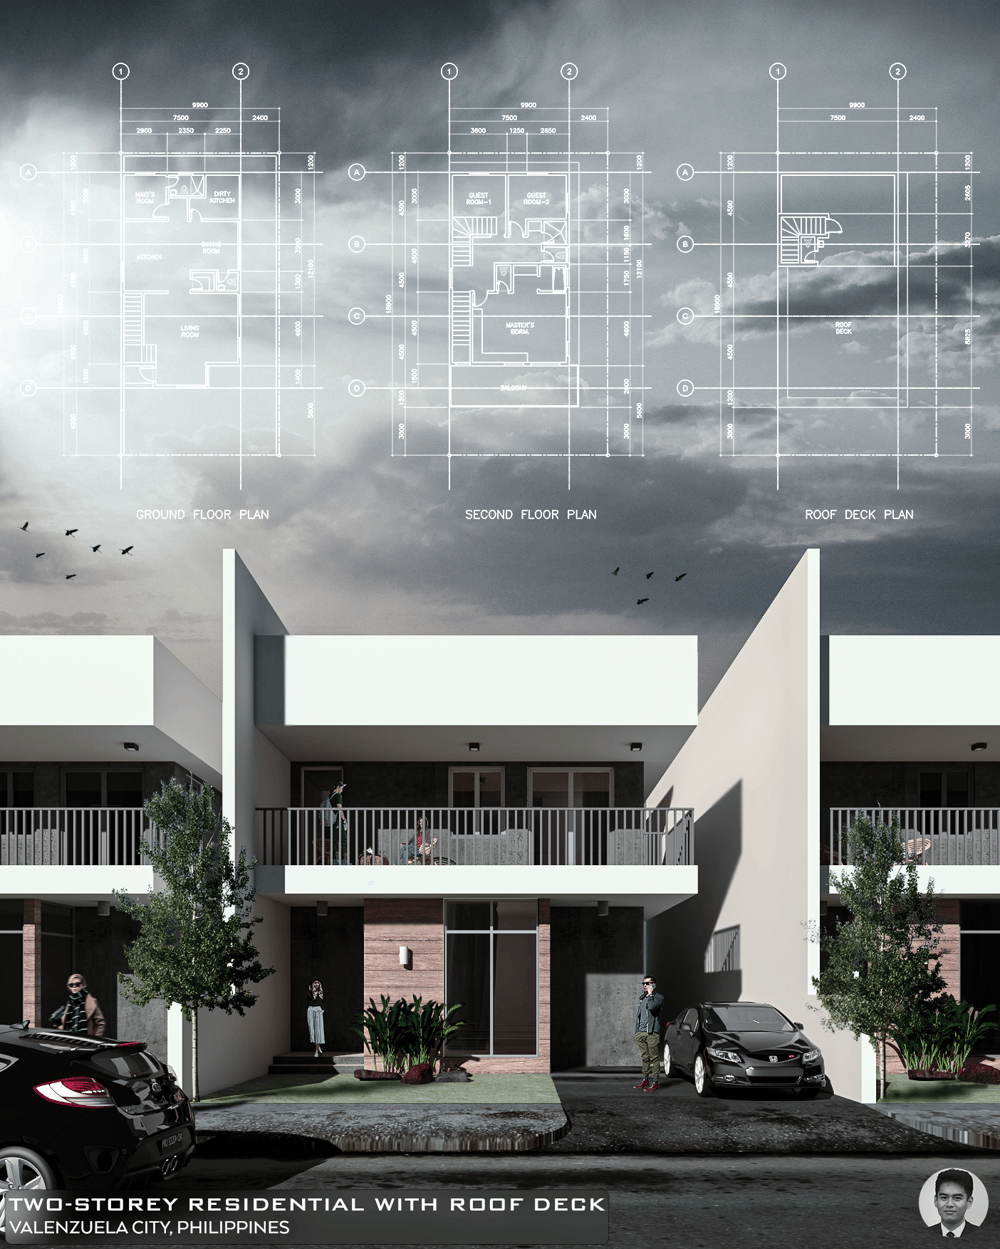 Two Storey Residential - image 1 - student project